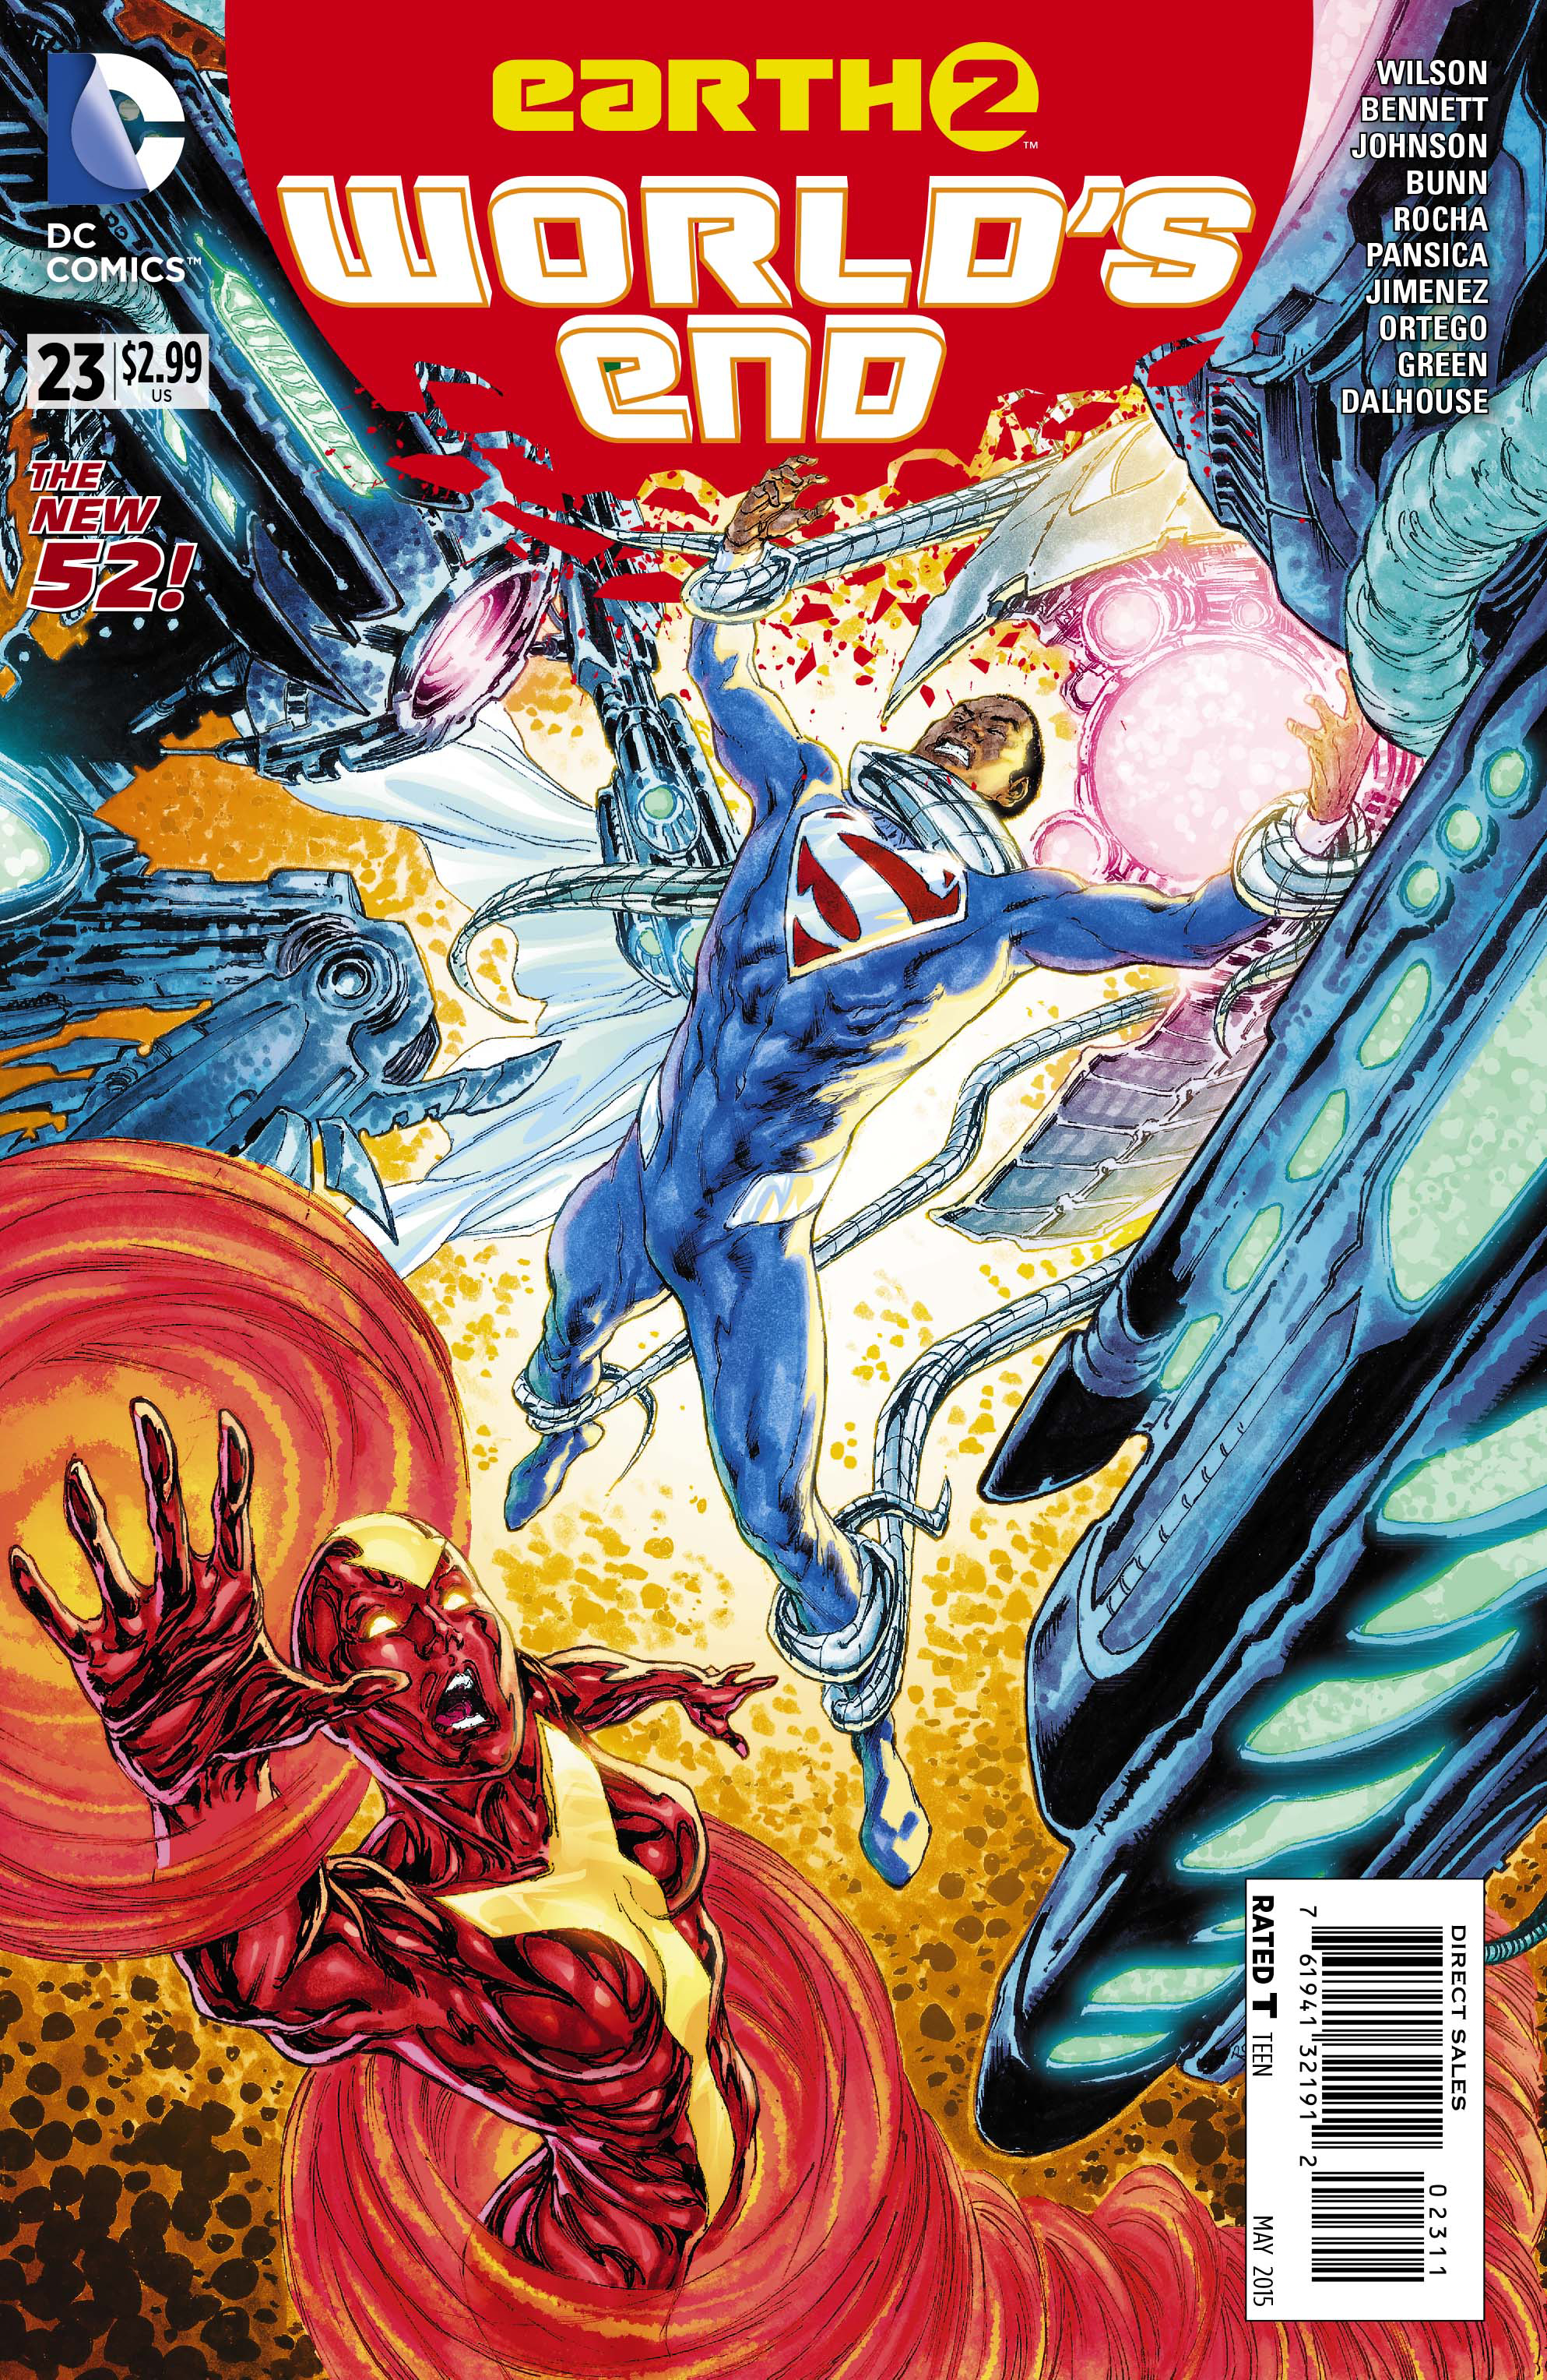 EARTH 2 WORLDS END #23